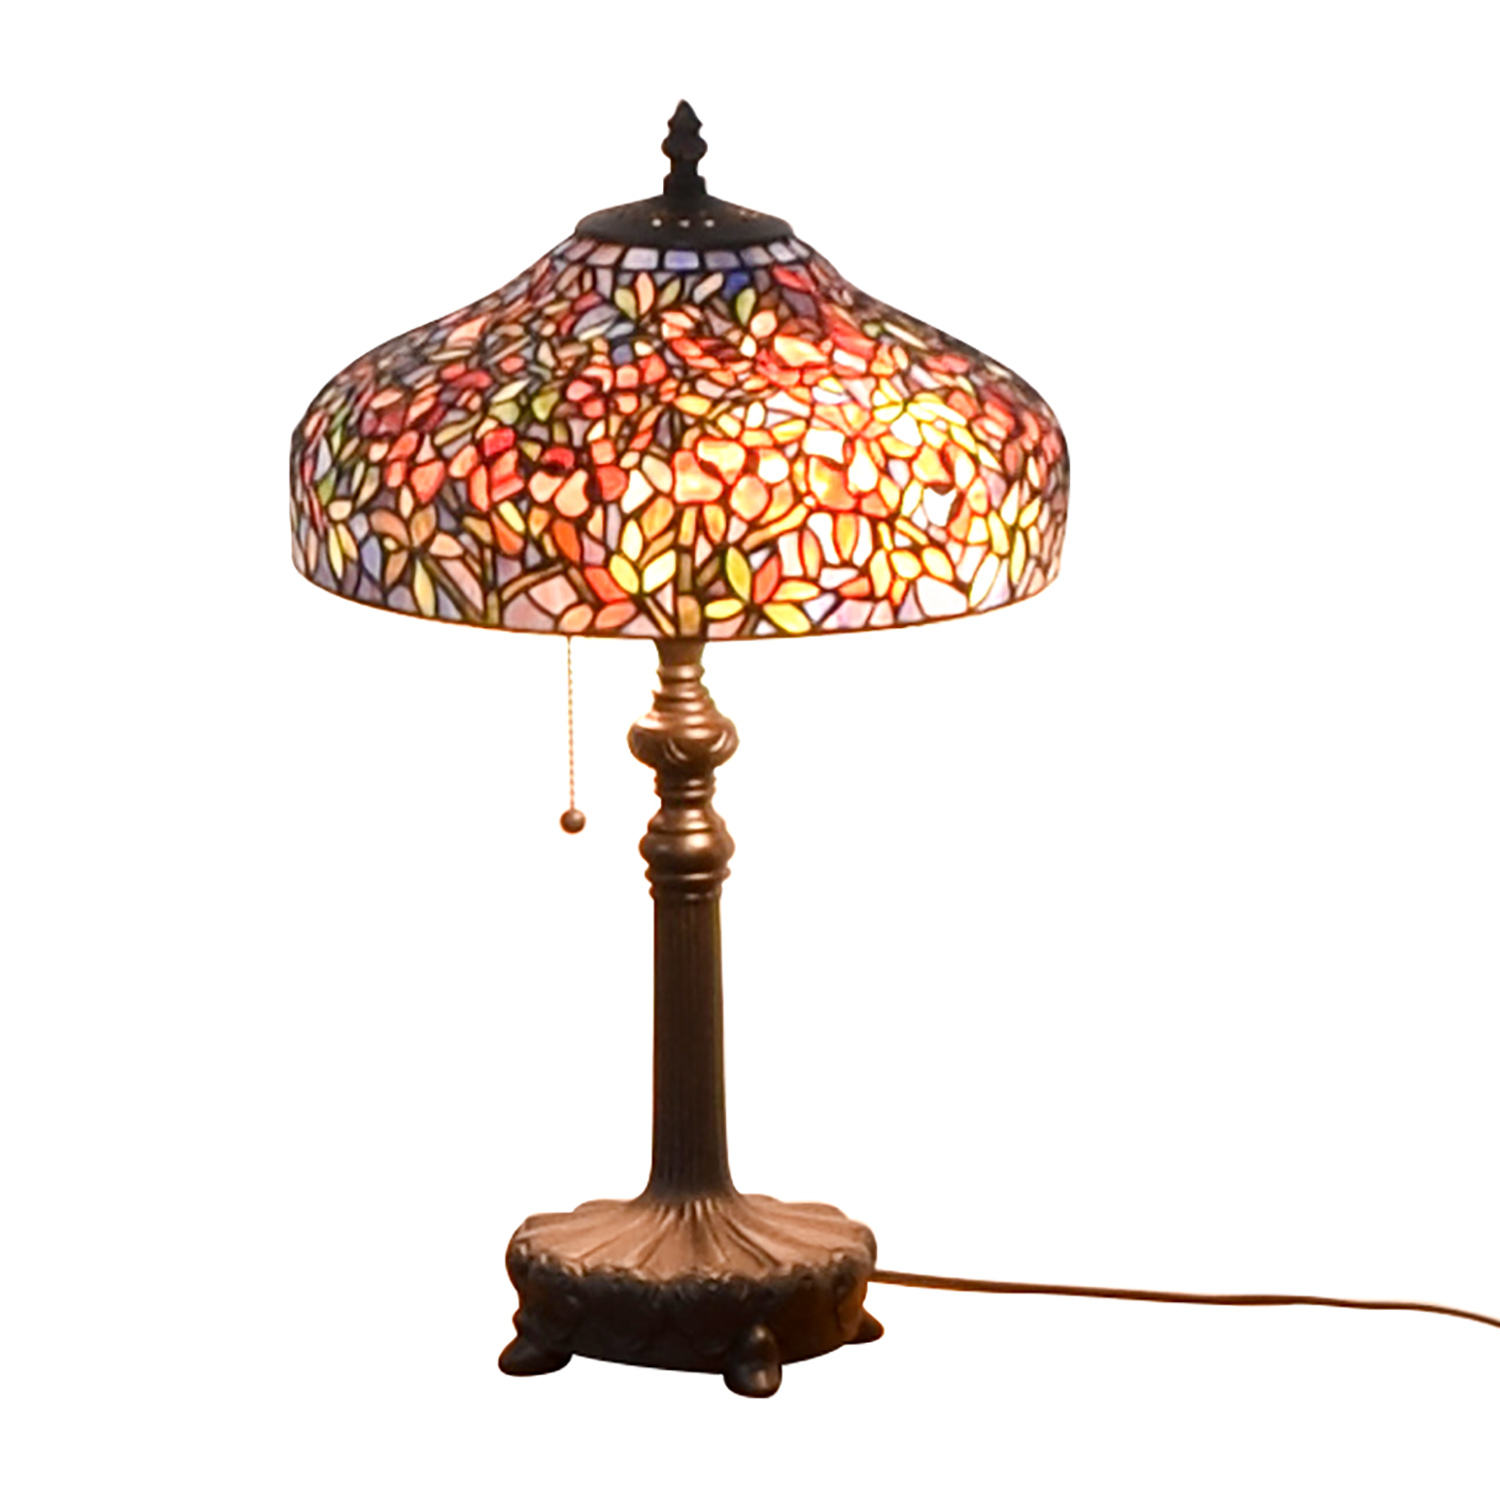 70 Off Quoizel Ouoizel Tiffany Style Table Lamp Decor